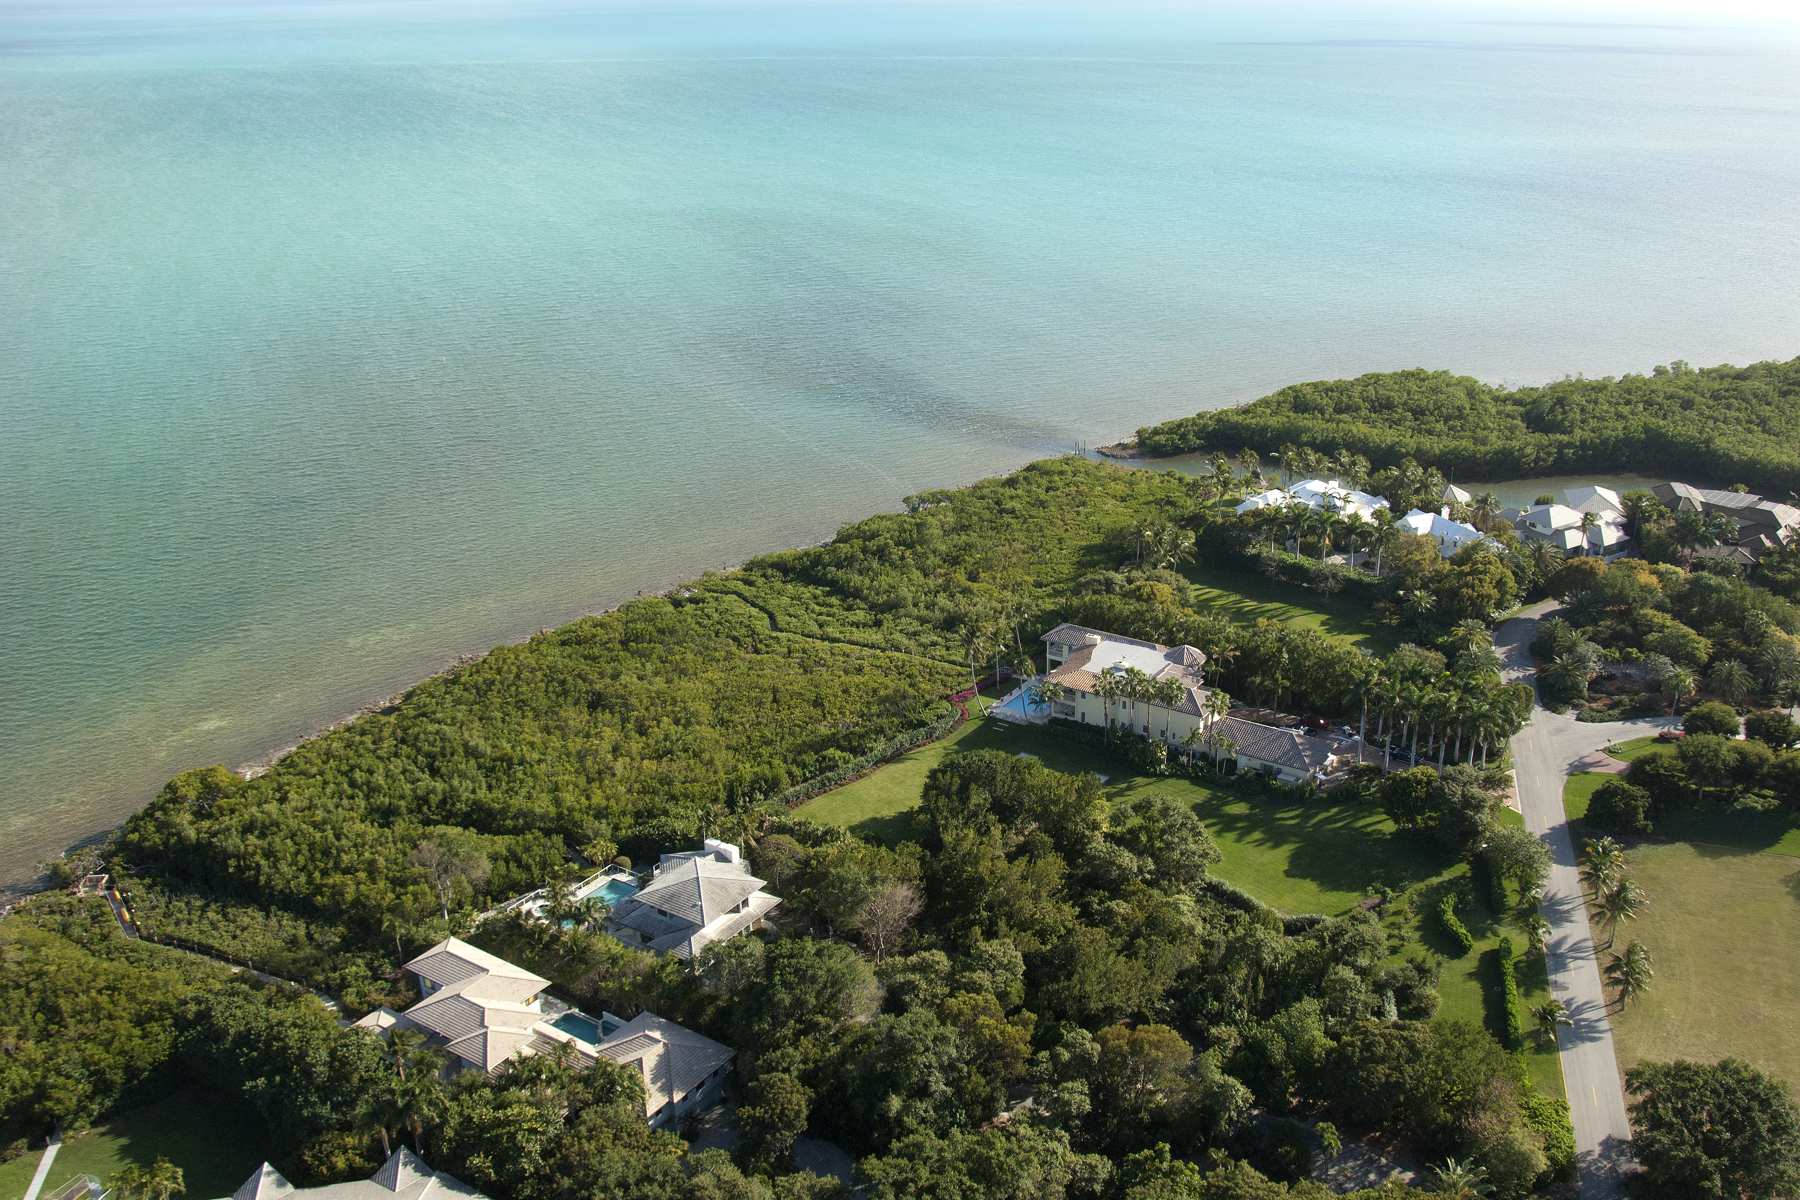 Земля для того Продажа на Ocean Front Vacant Lots at Ocean Reef 3 & 4 Osprey Lane Key Largo, Флорида 33037 Соединенные Штаты